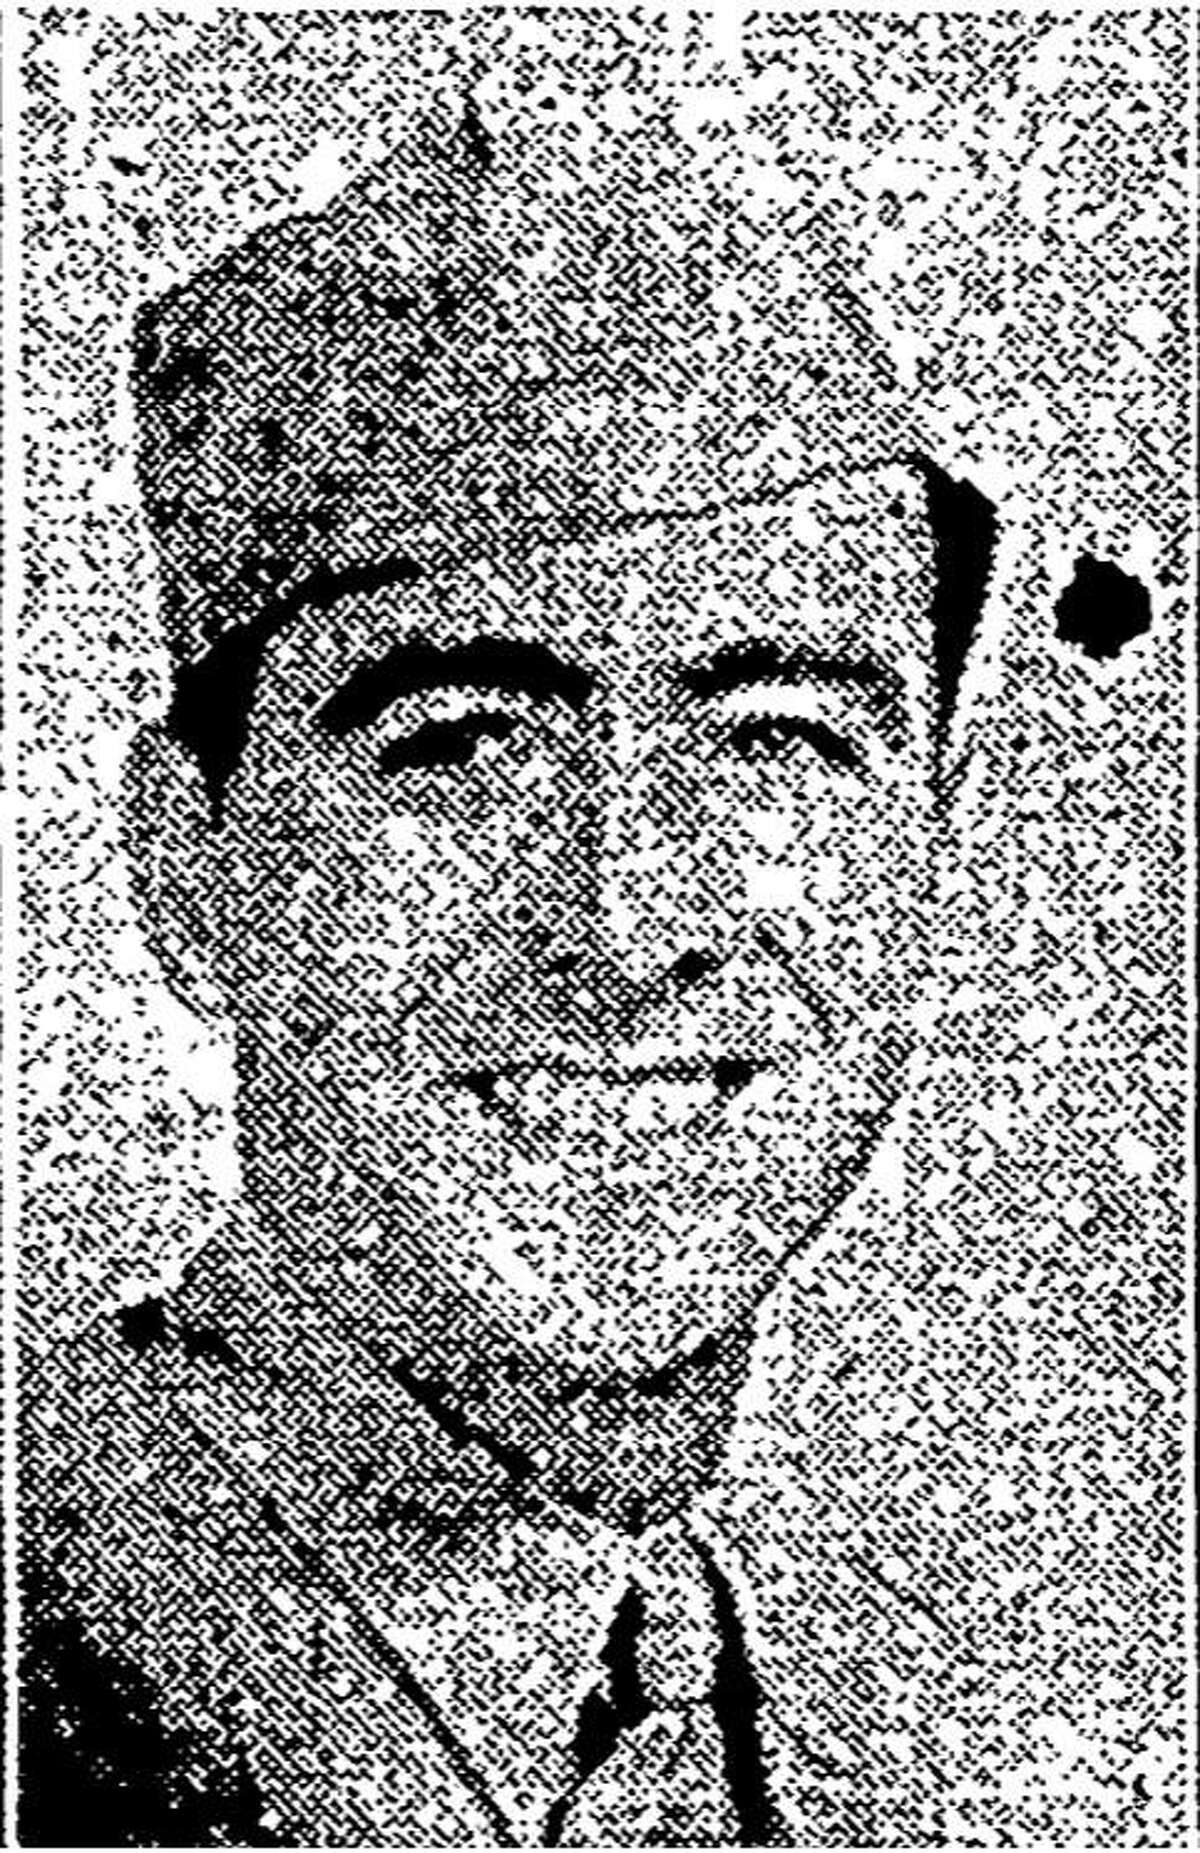 Sgt. Louis Doddo of South Norwalk, Conn. was killed in July 1944 during a battle against the Japanese during World War II. His body was never found. On Nov. 3, 2020, the Defense POW/MIA Accounting Agency announced they identified Doddo's remains which will be returned to his family. A ceremony in his honor is being planned for spring 2021.